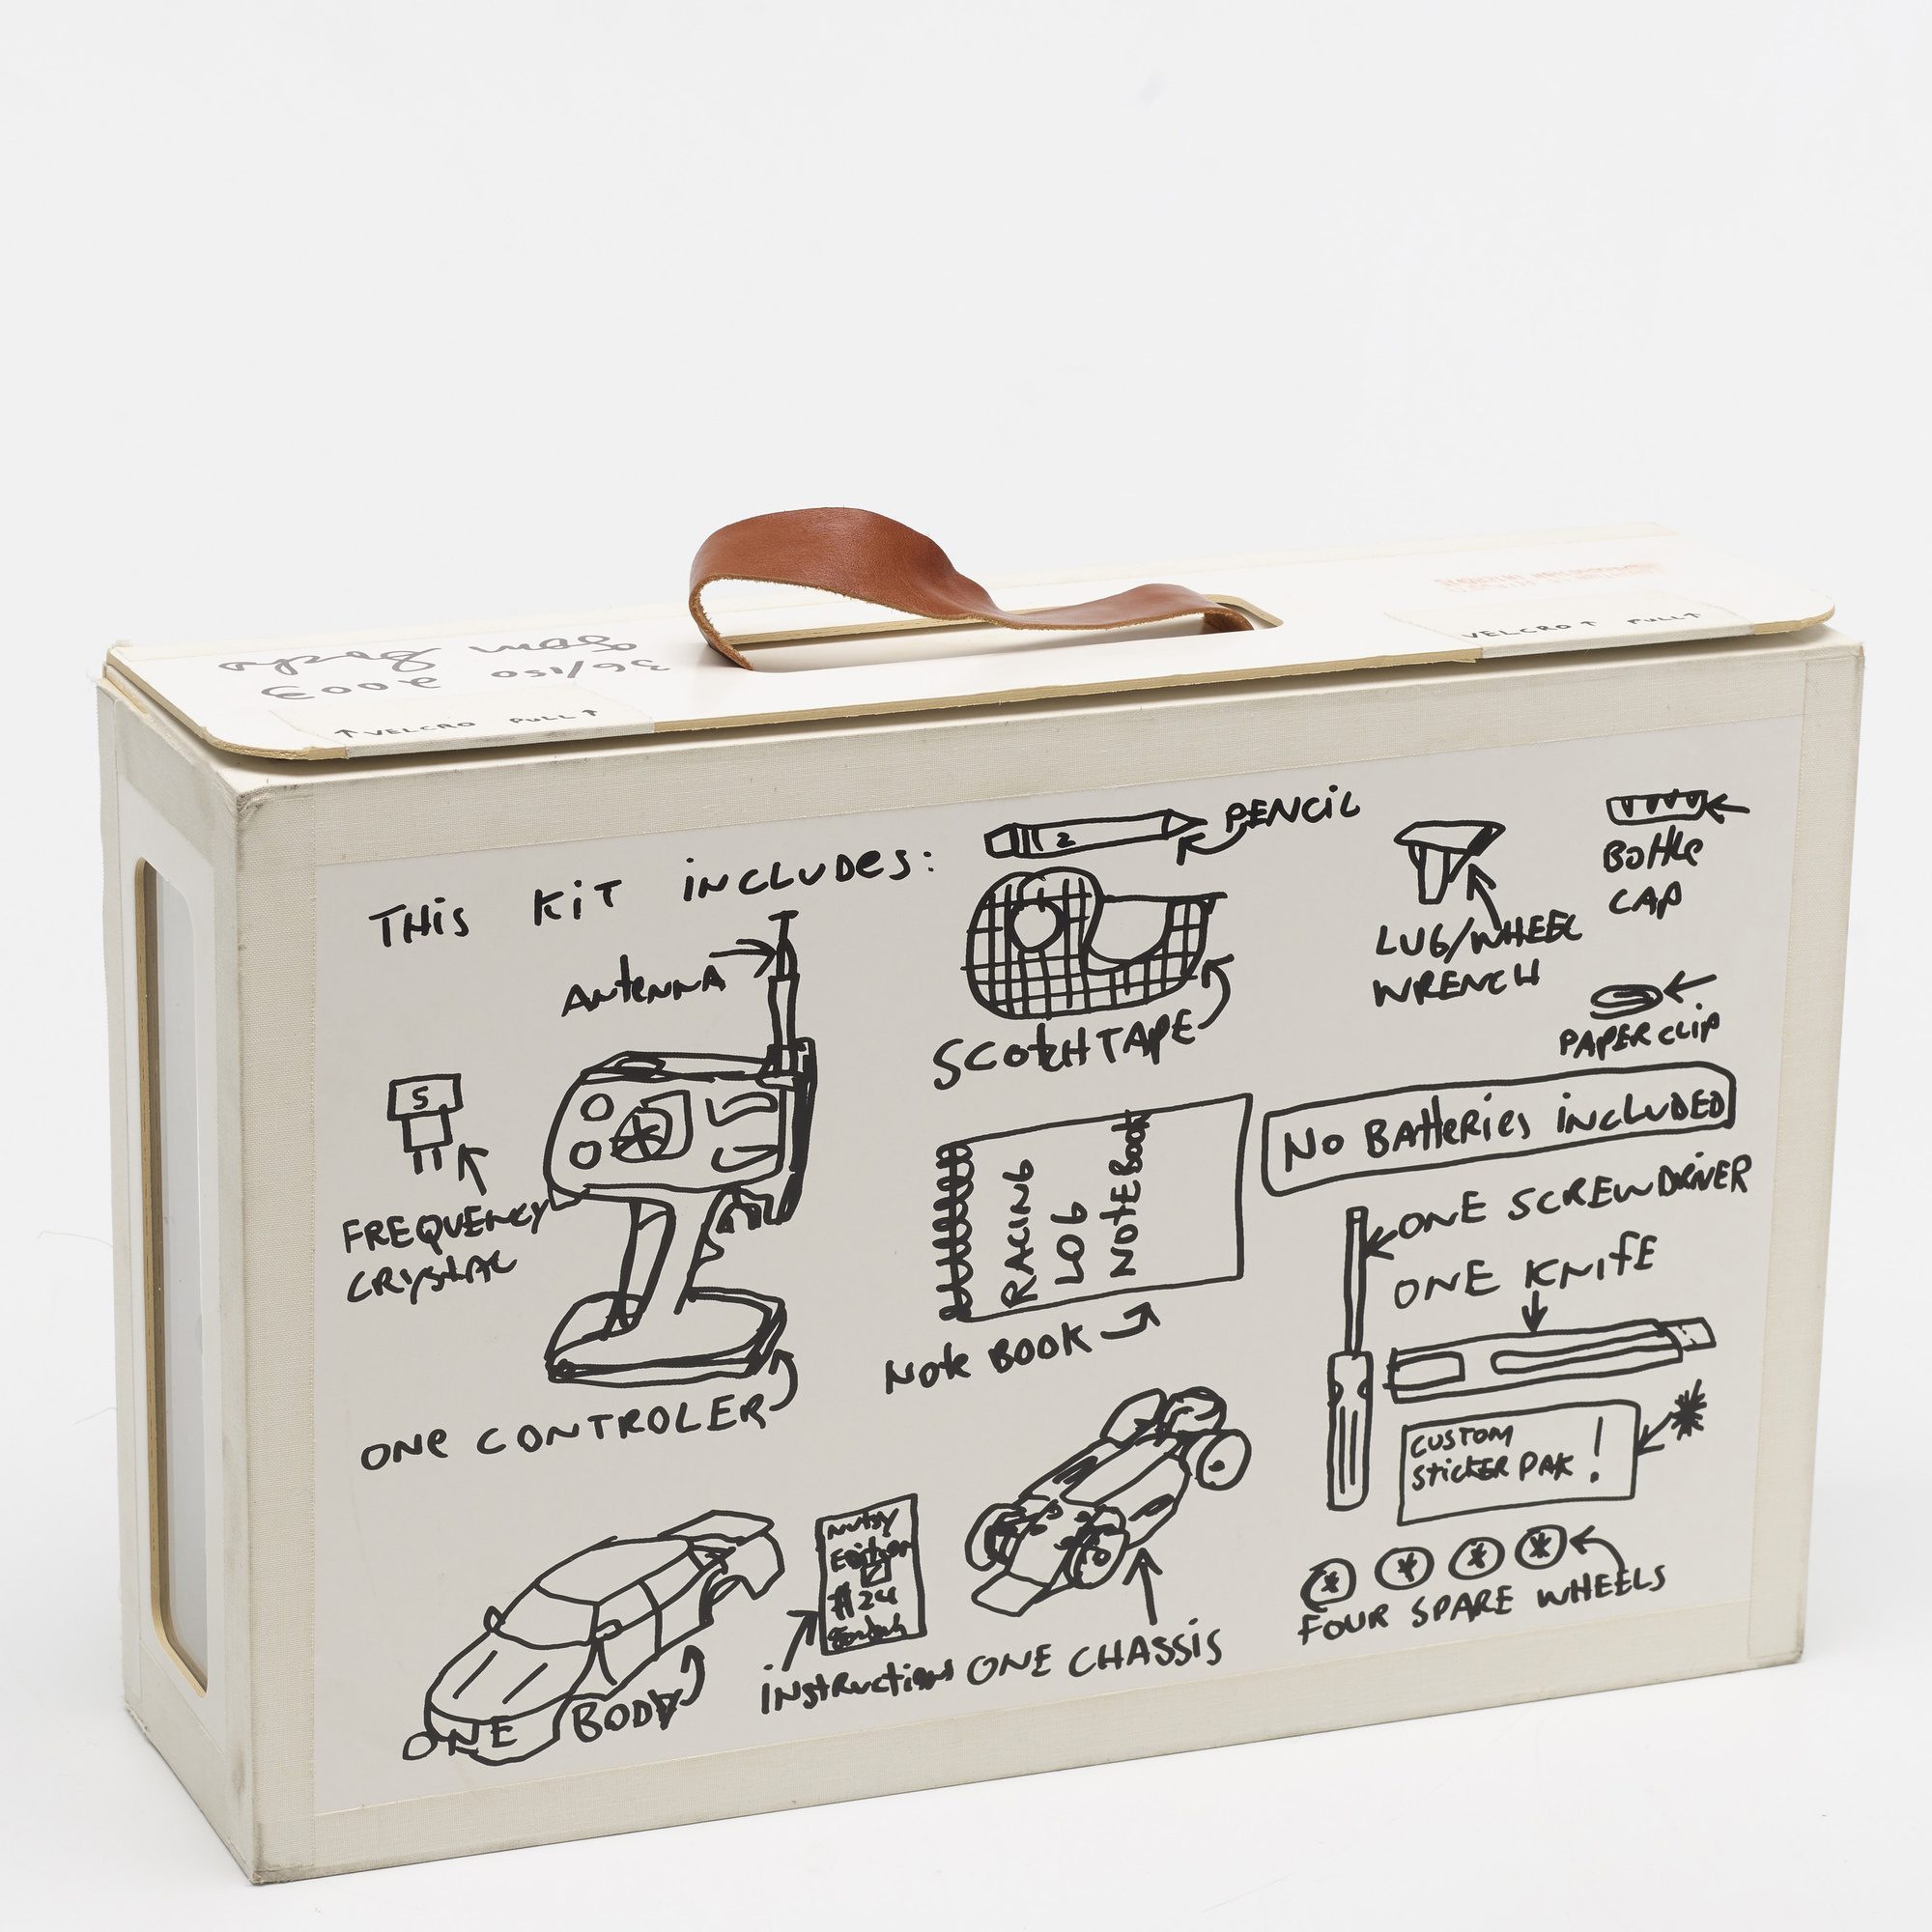 137: Tom Sachs / Deluxe Racing Set (3 of 3)